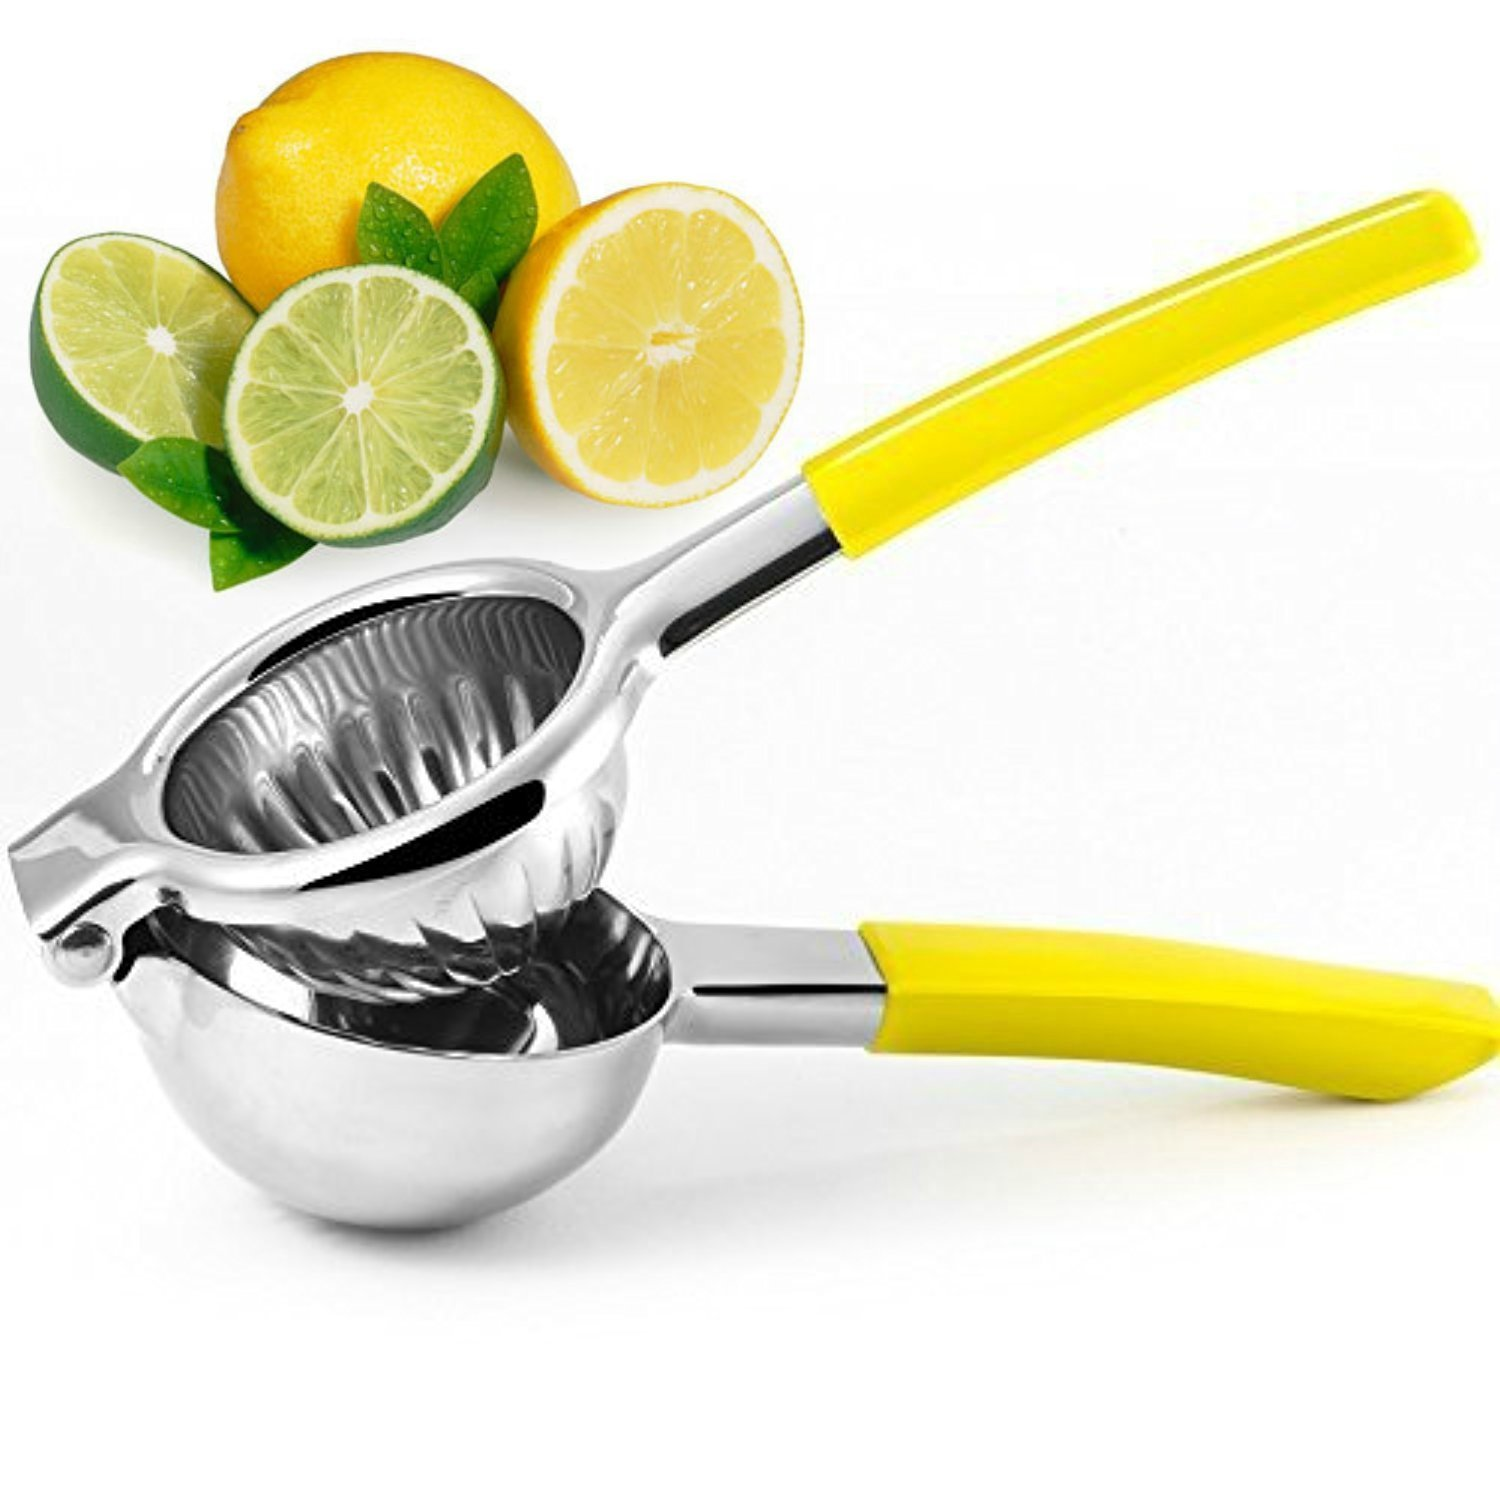 Lemon Squeezer - Best Premium Quality Stainless Steel Hand Press with Silicone Handles and Heavy Duty Easy to Use Manual Citrus Press